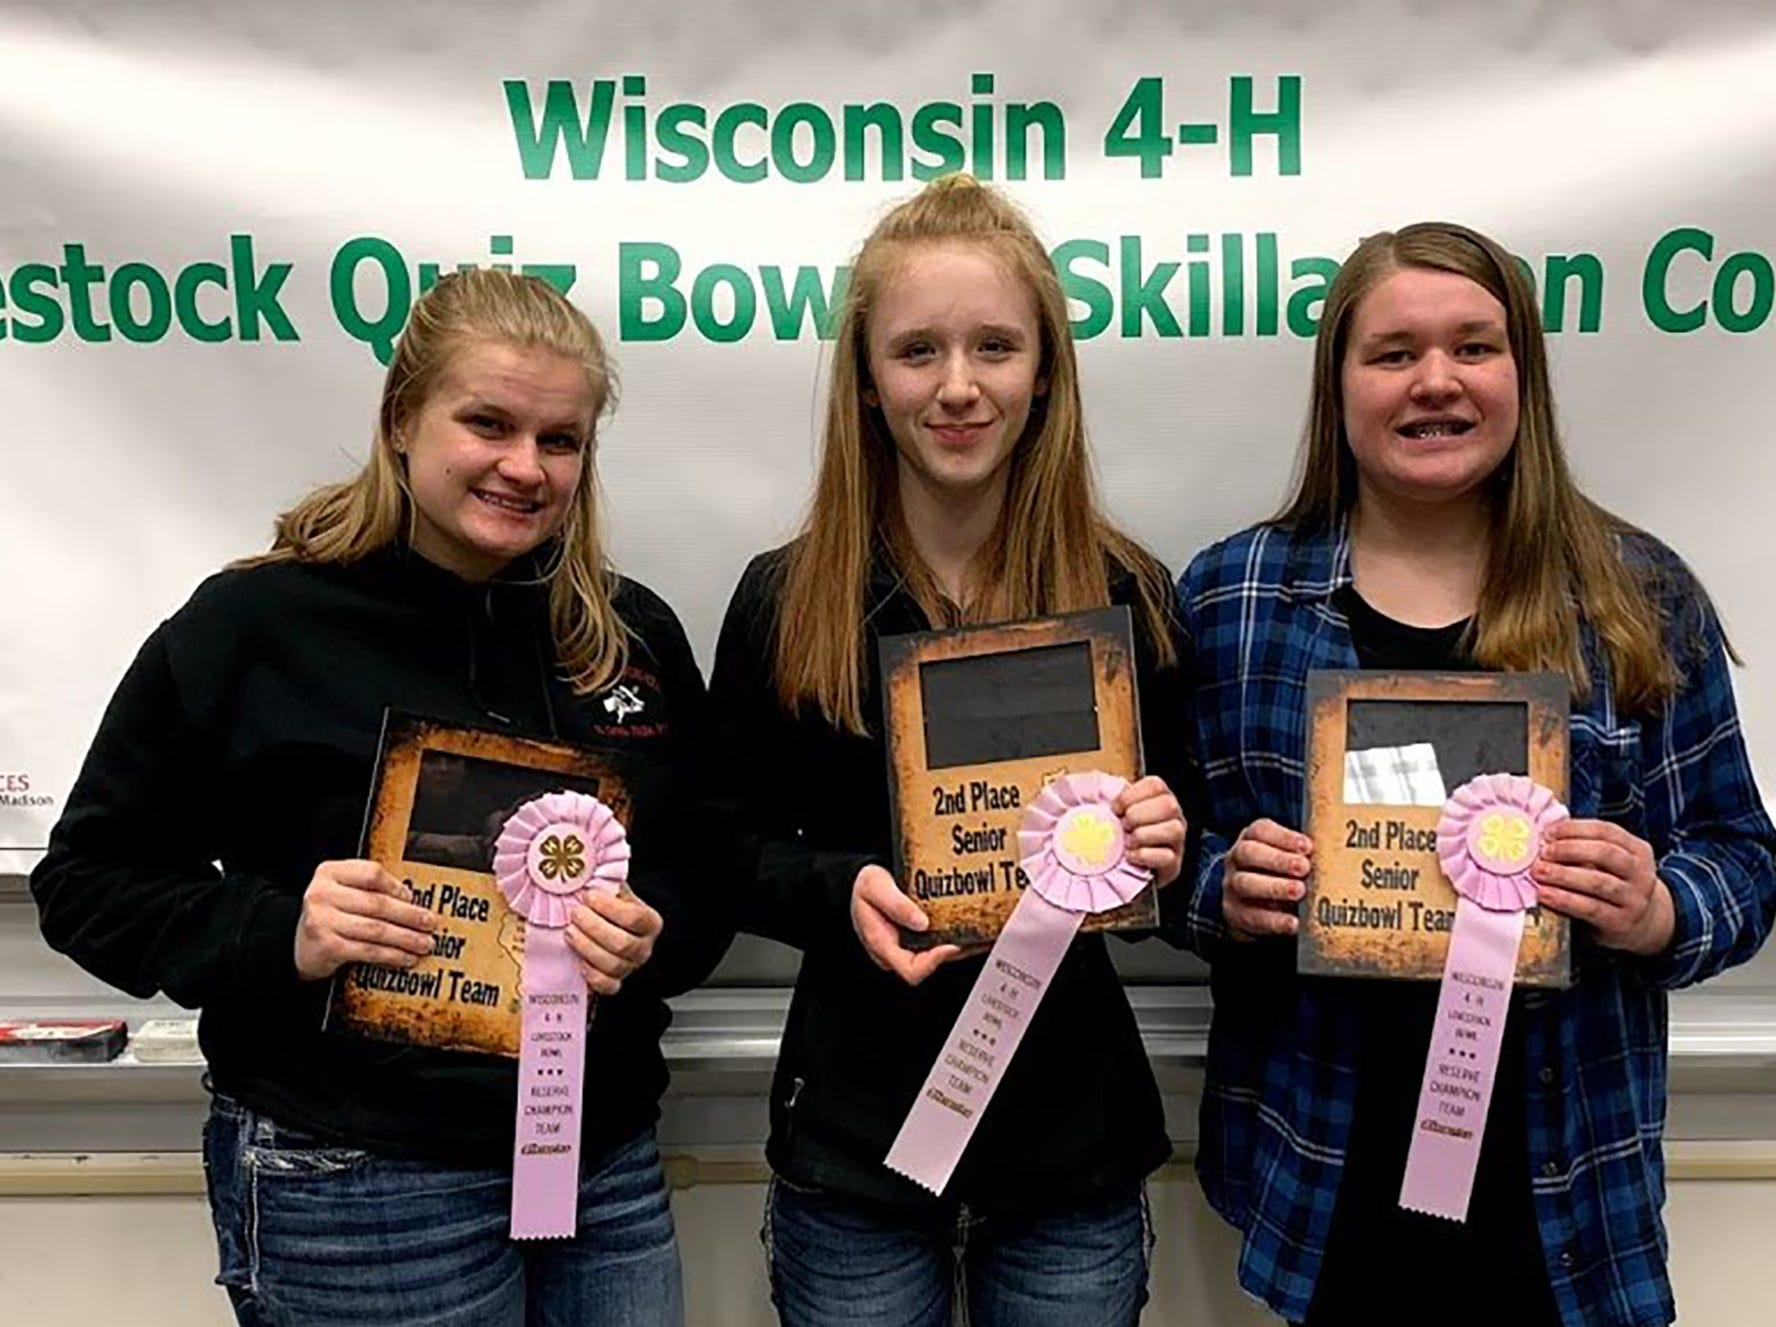 Second place Senior Quiz Bowl winners from Polk County are (from left) Josie Carlson, Katherine Elwood, Sarah Carlson.